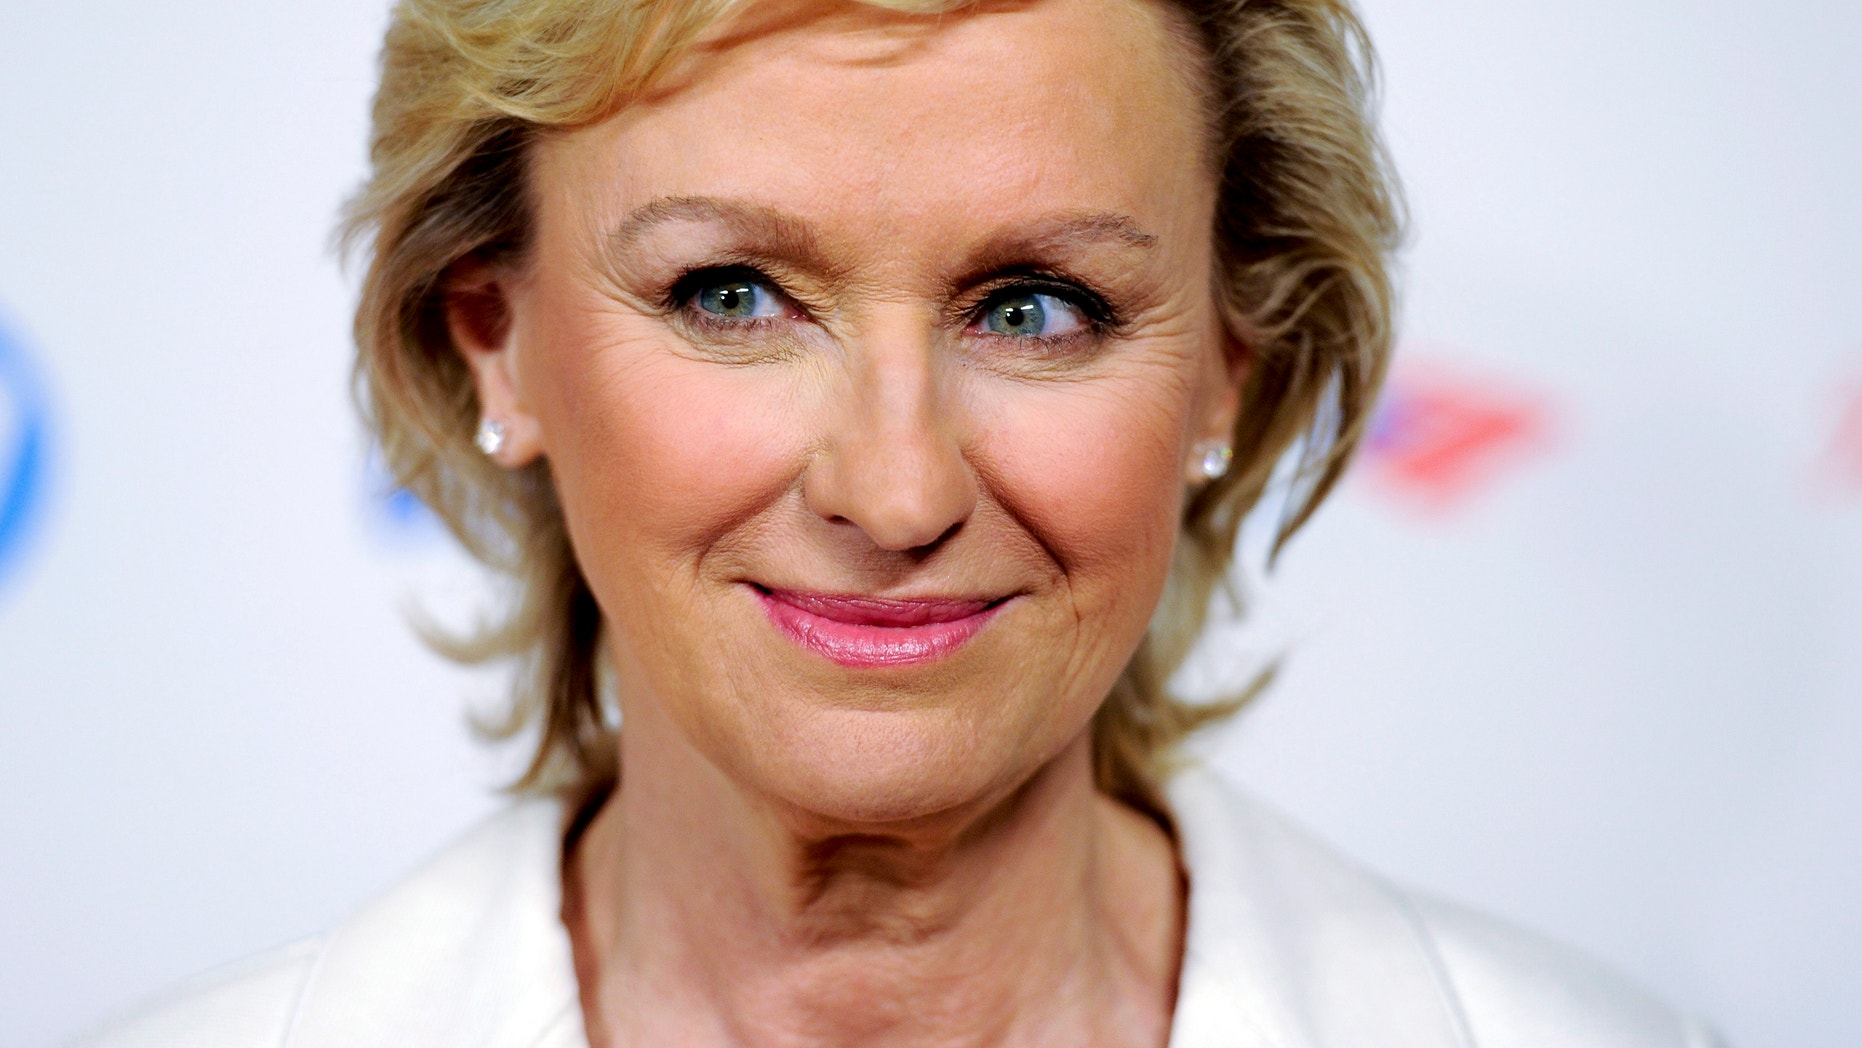 In this Thursday, March 8, 2012, file photo, Tina Brown attends the Women in the World Summit 2012 in New York.